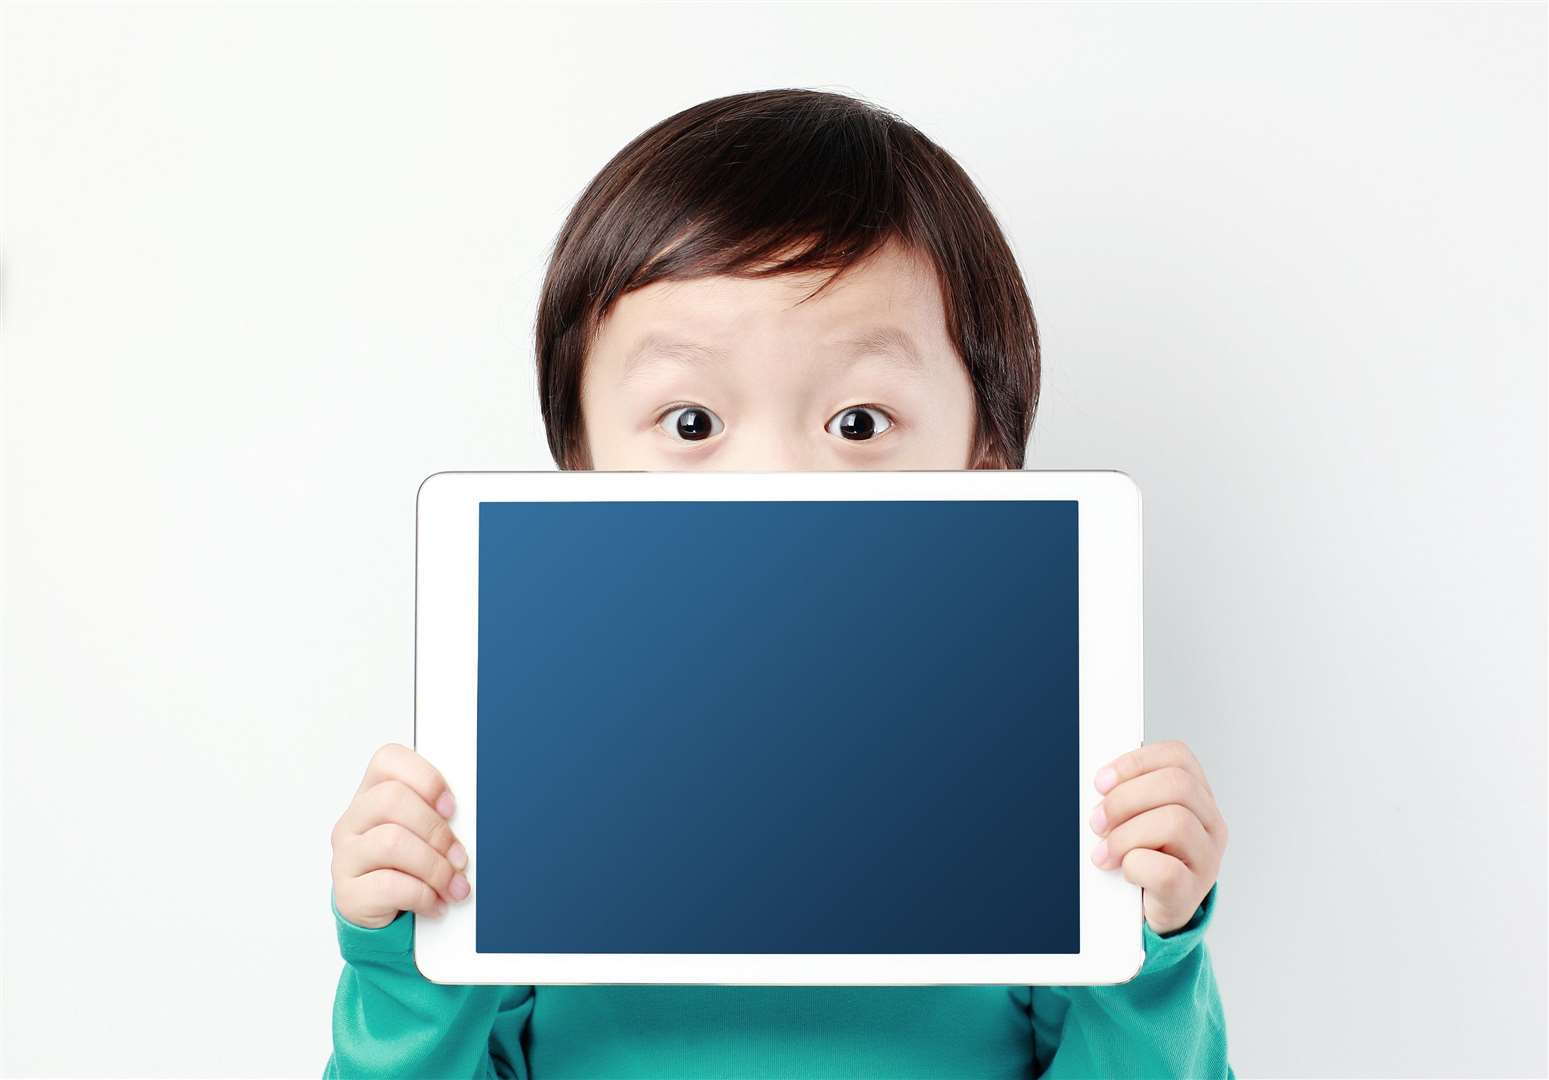 Encourage the kids to put the tablets down early